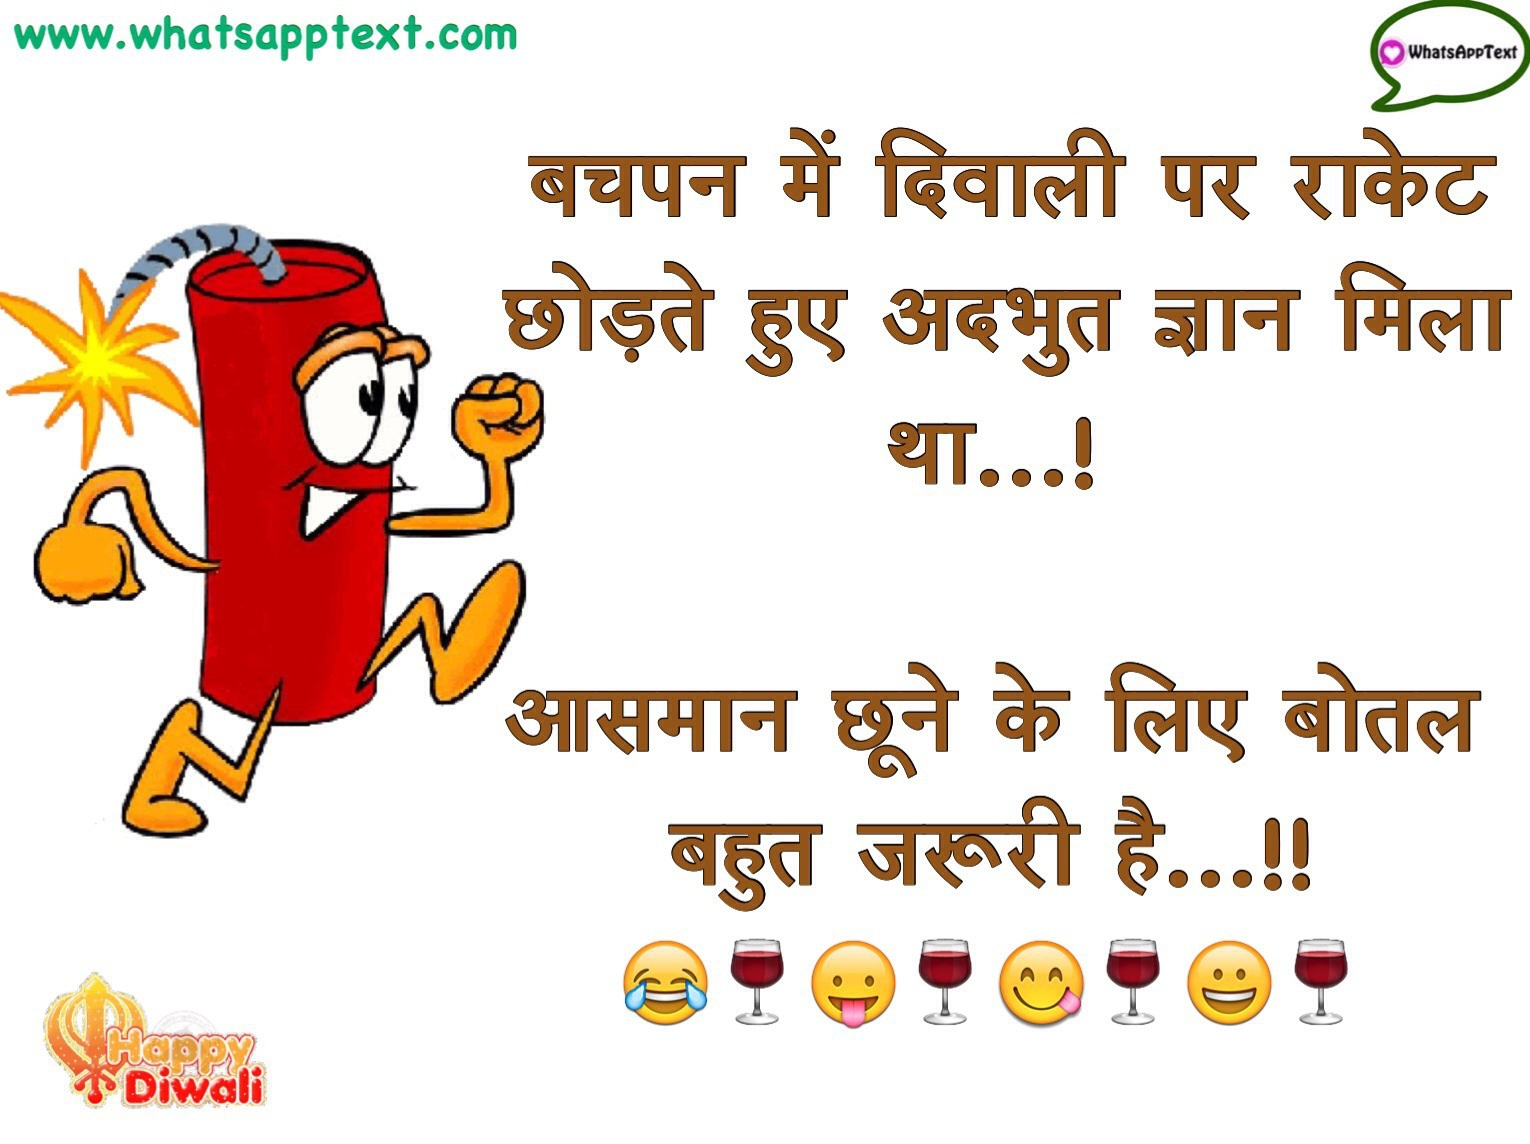 Best Funny Diwali Messages And Jokes Images Whatsapp Text Jokes